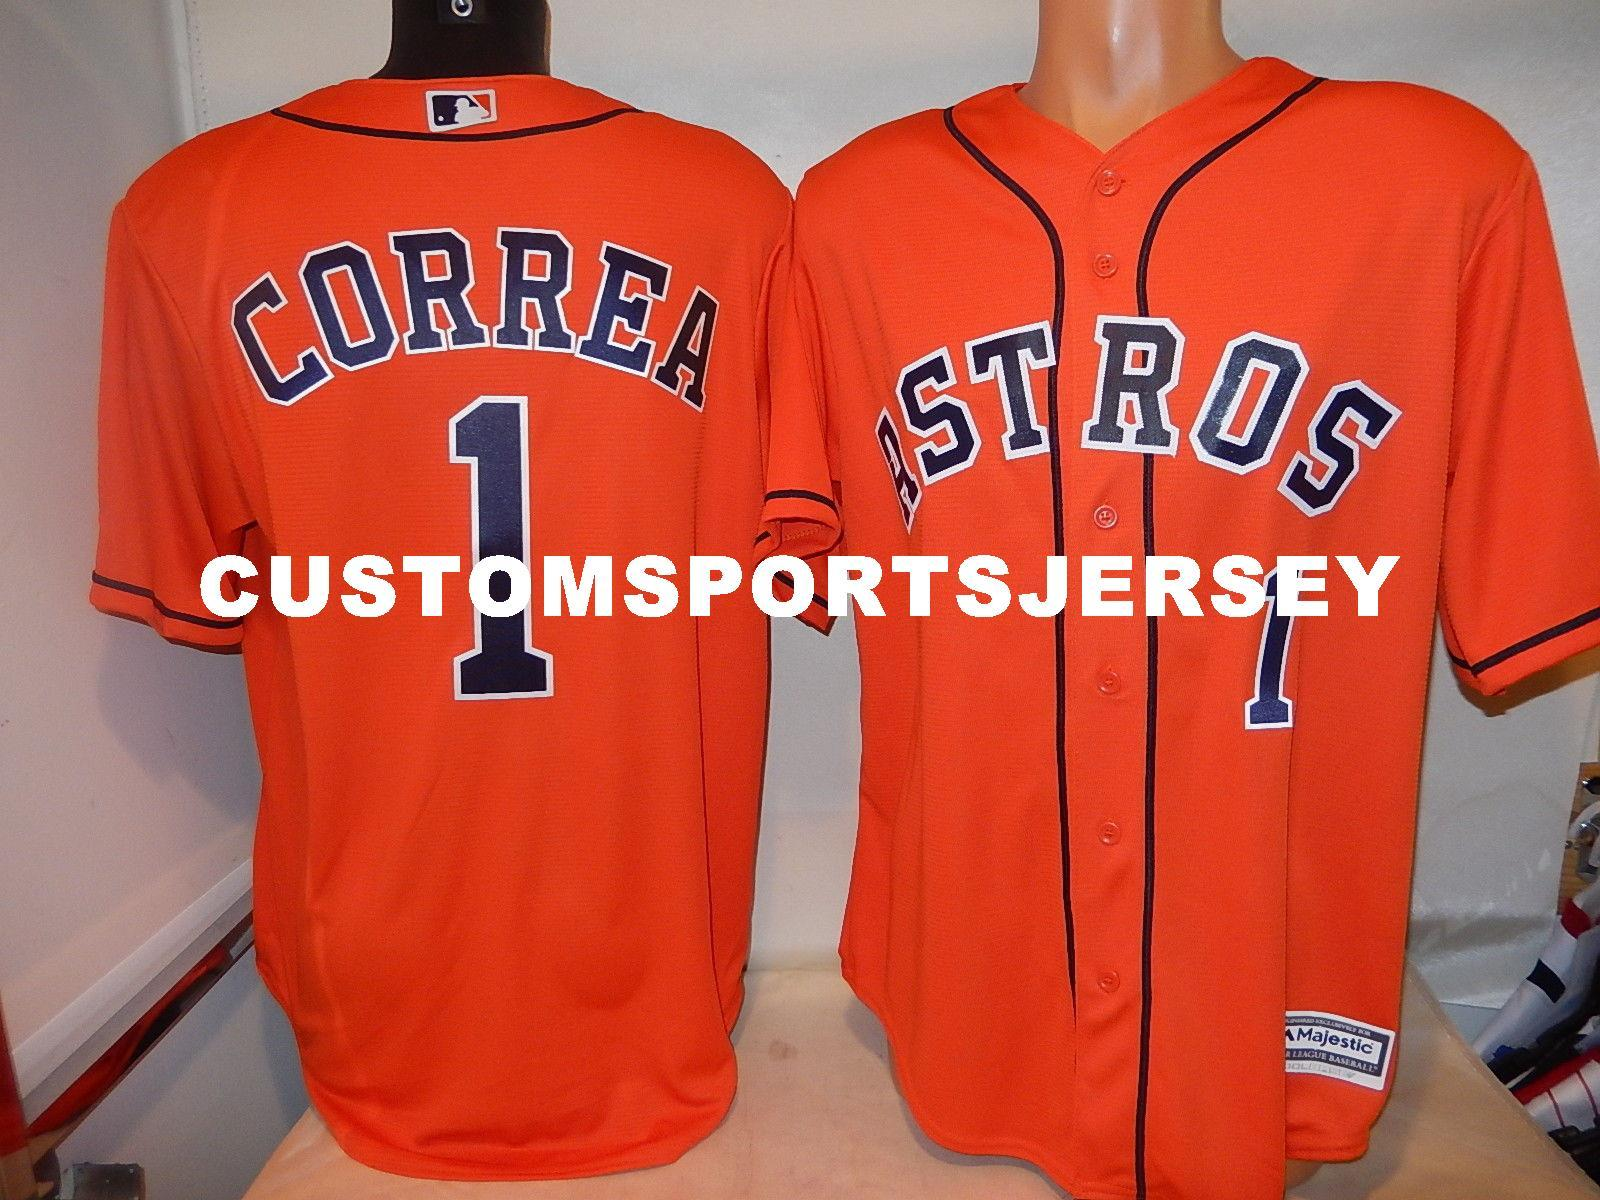 watch cbbf8 56e60 wholesale carlos correa orange jersey 23659 dce45